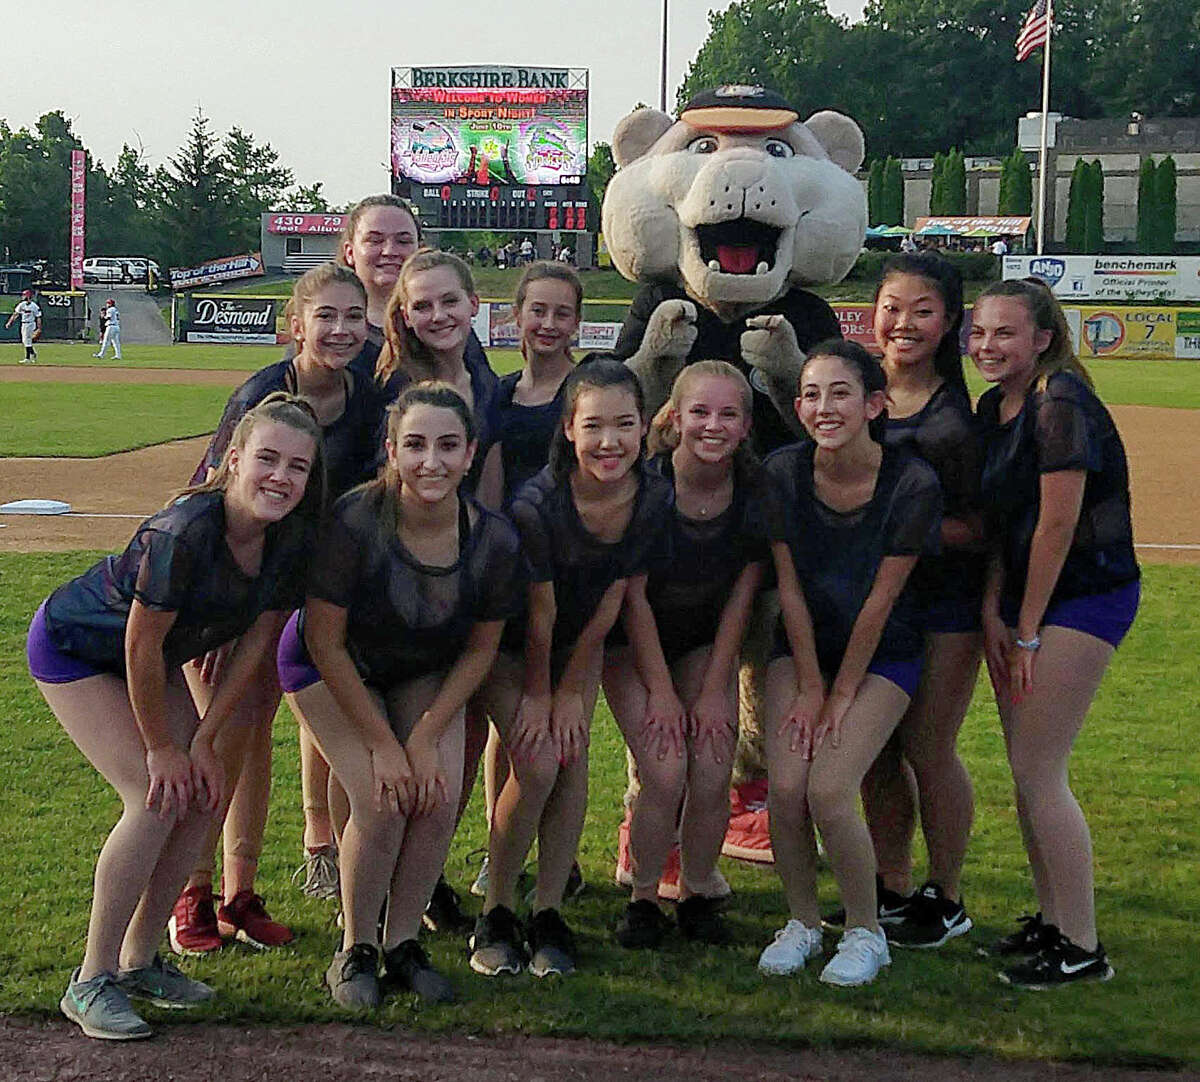 The Baker School of Dance Performance Team at a Tri-City ValleyCats game in 2019. (Provided)